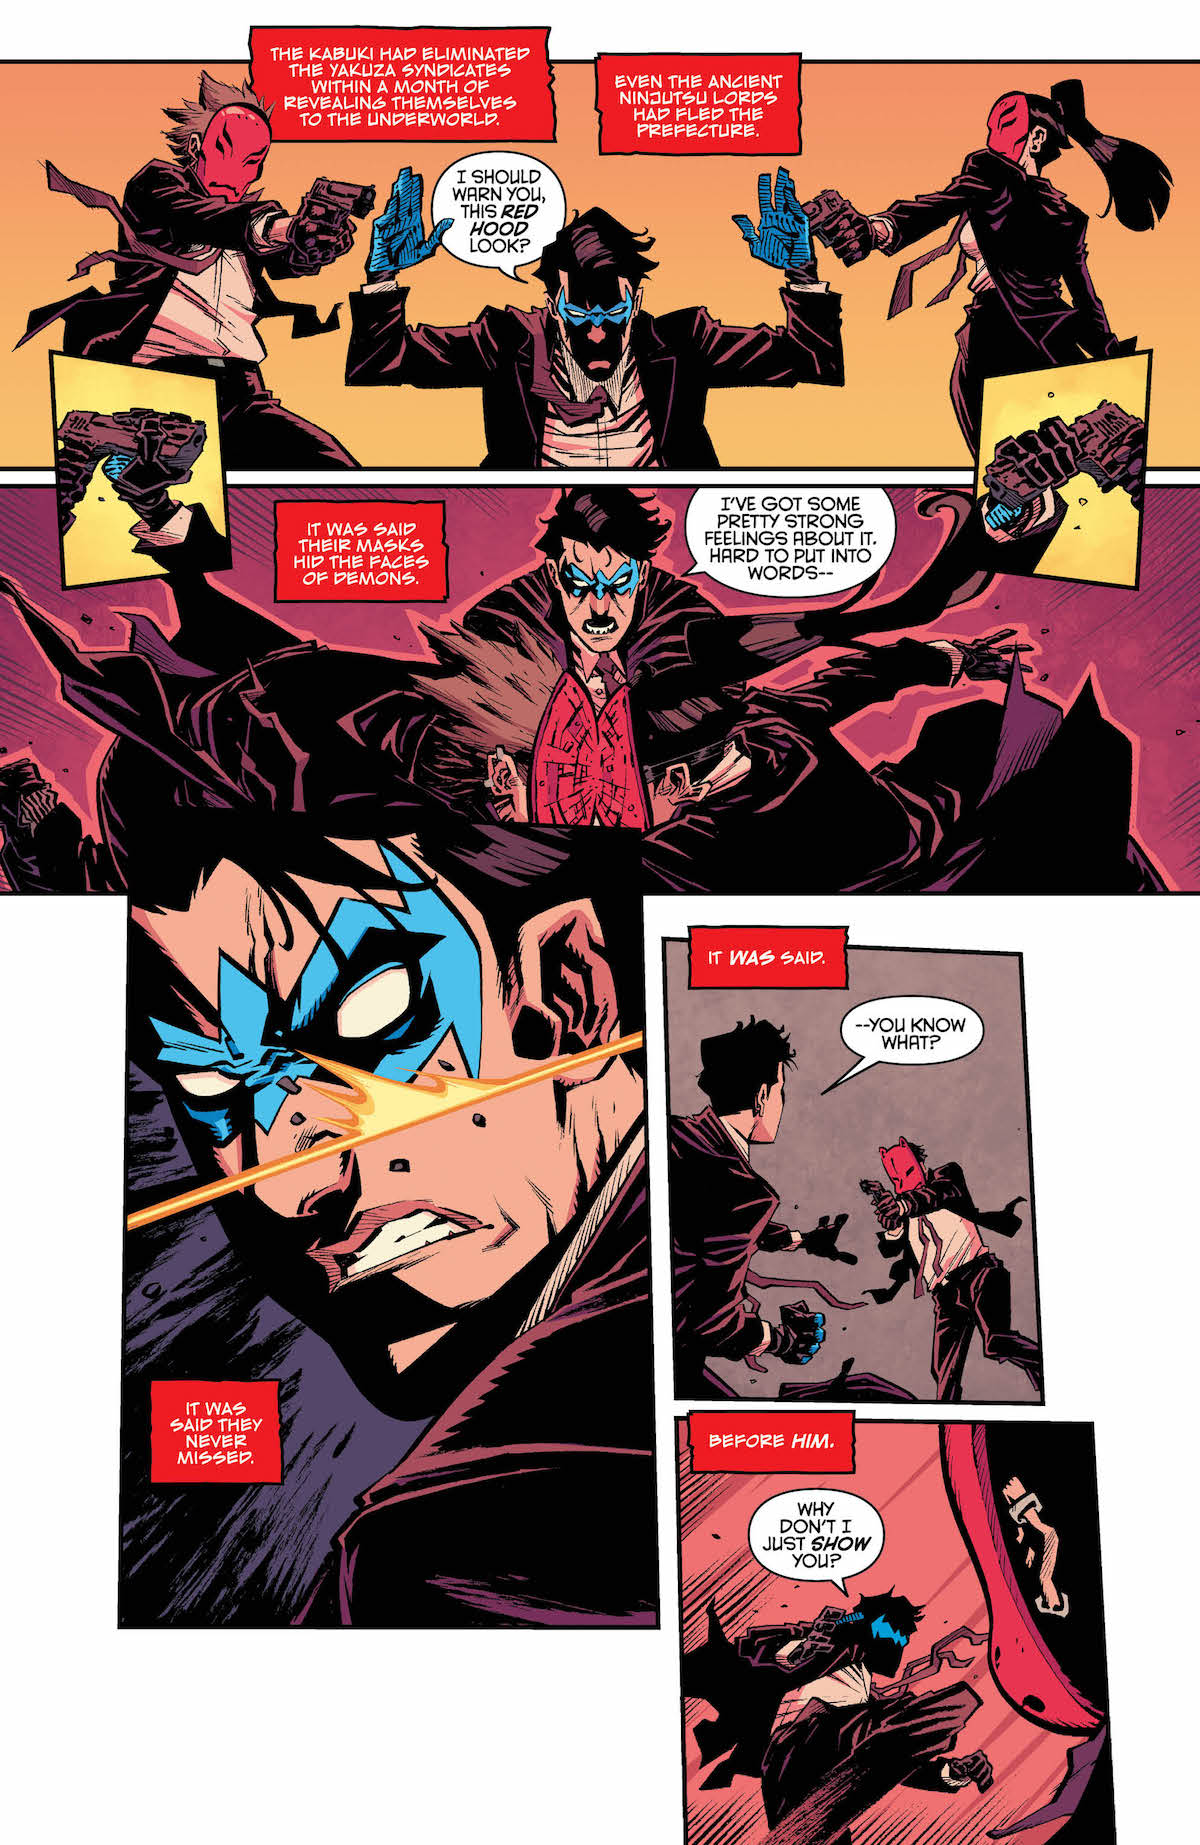 Nightwing #42 page 4